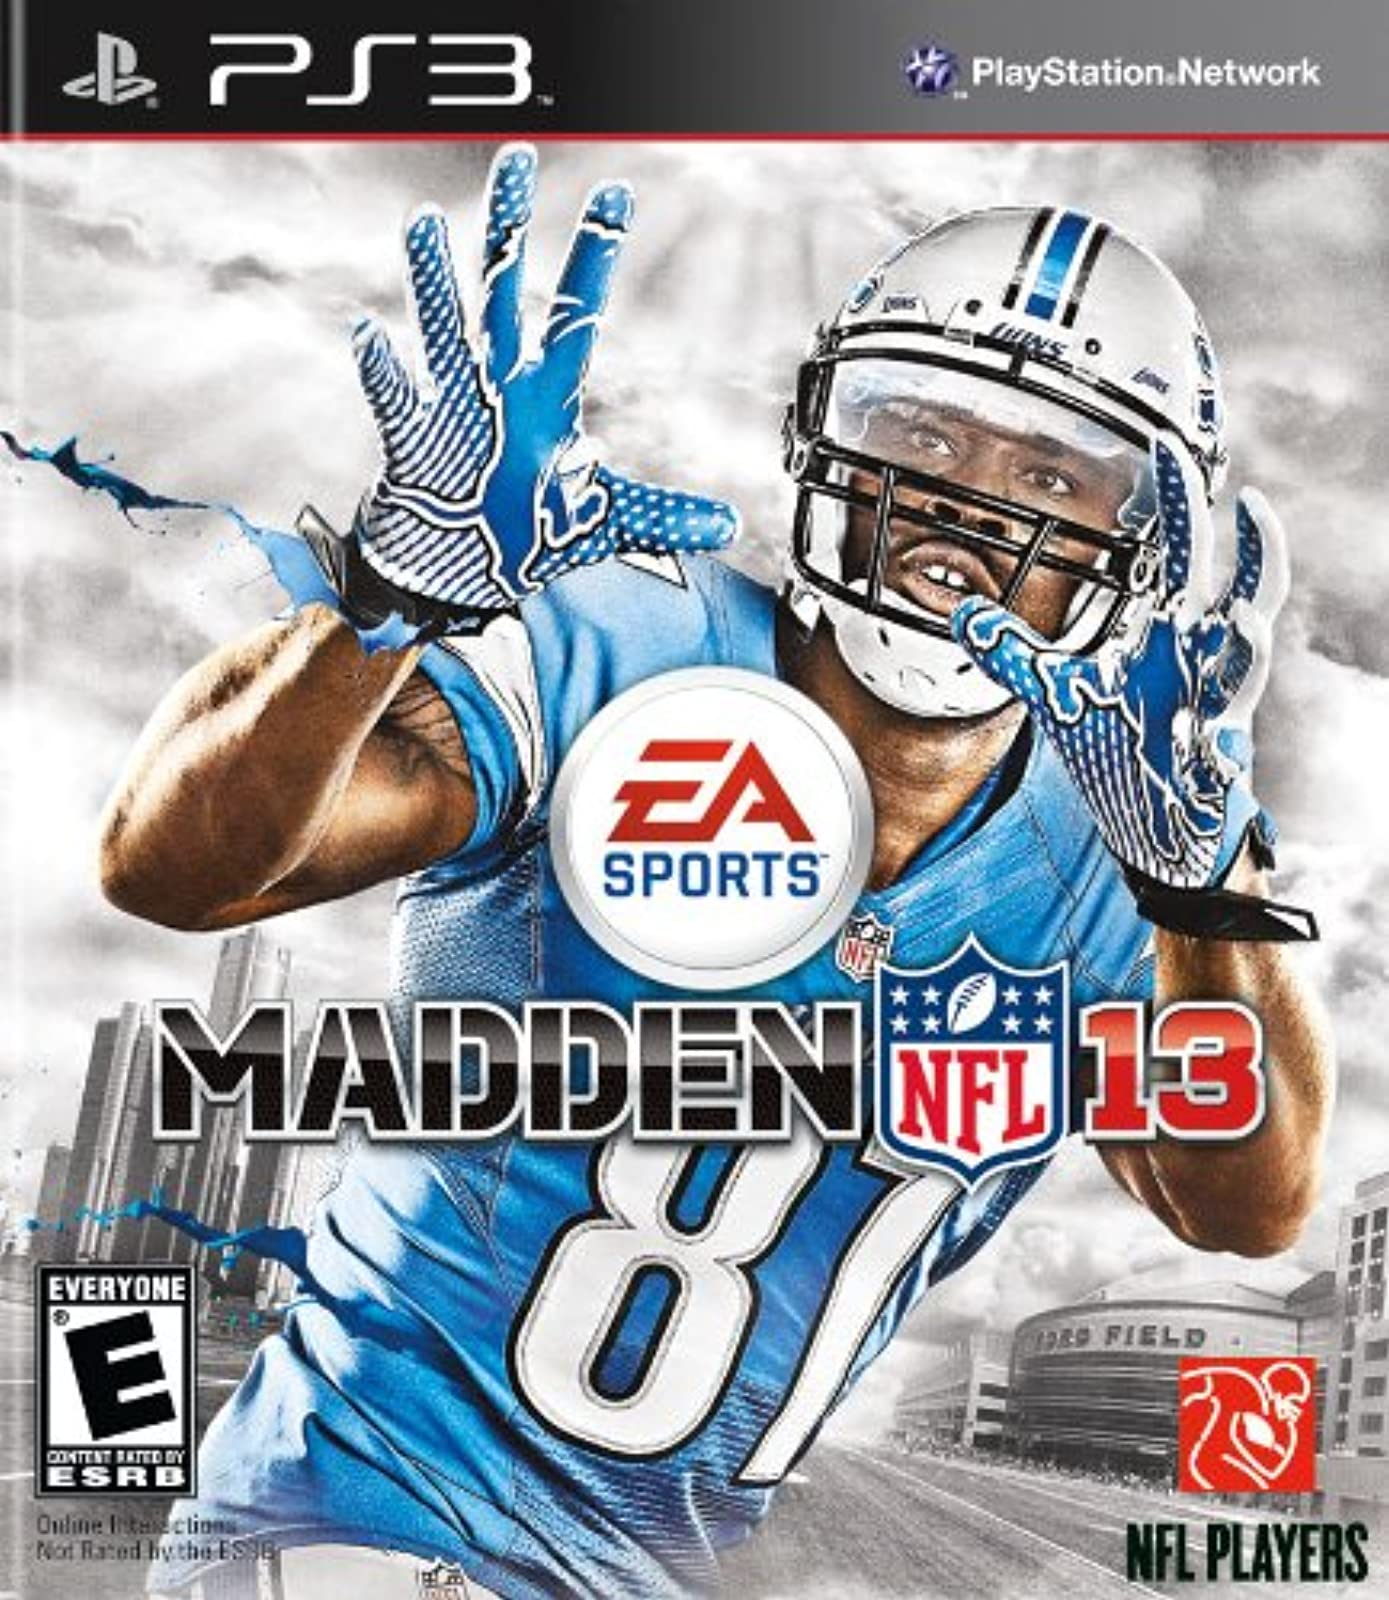 Madden NFL 13 For PlayStation 3 PS3 Football